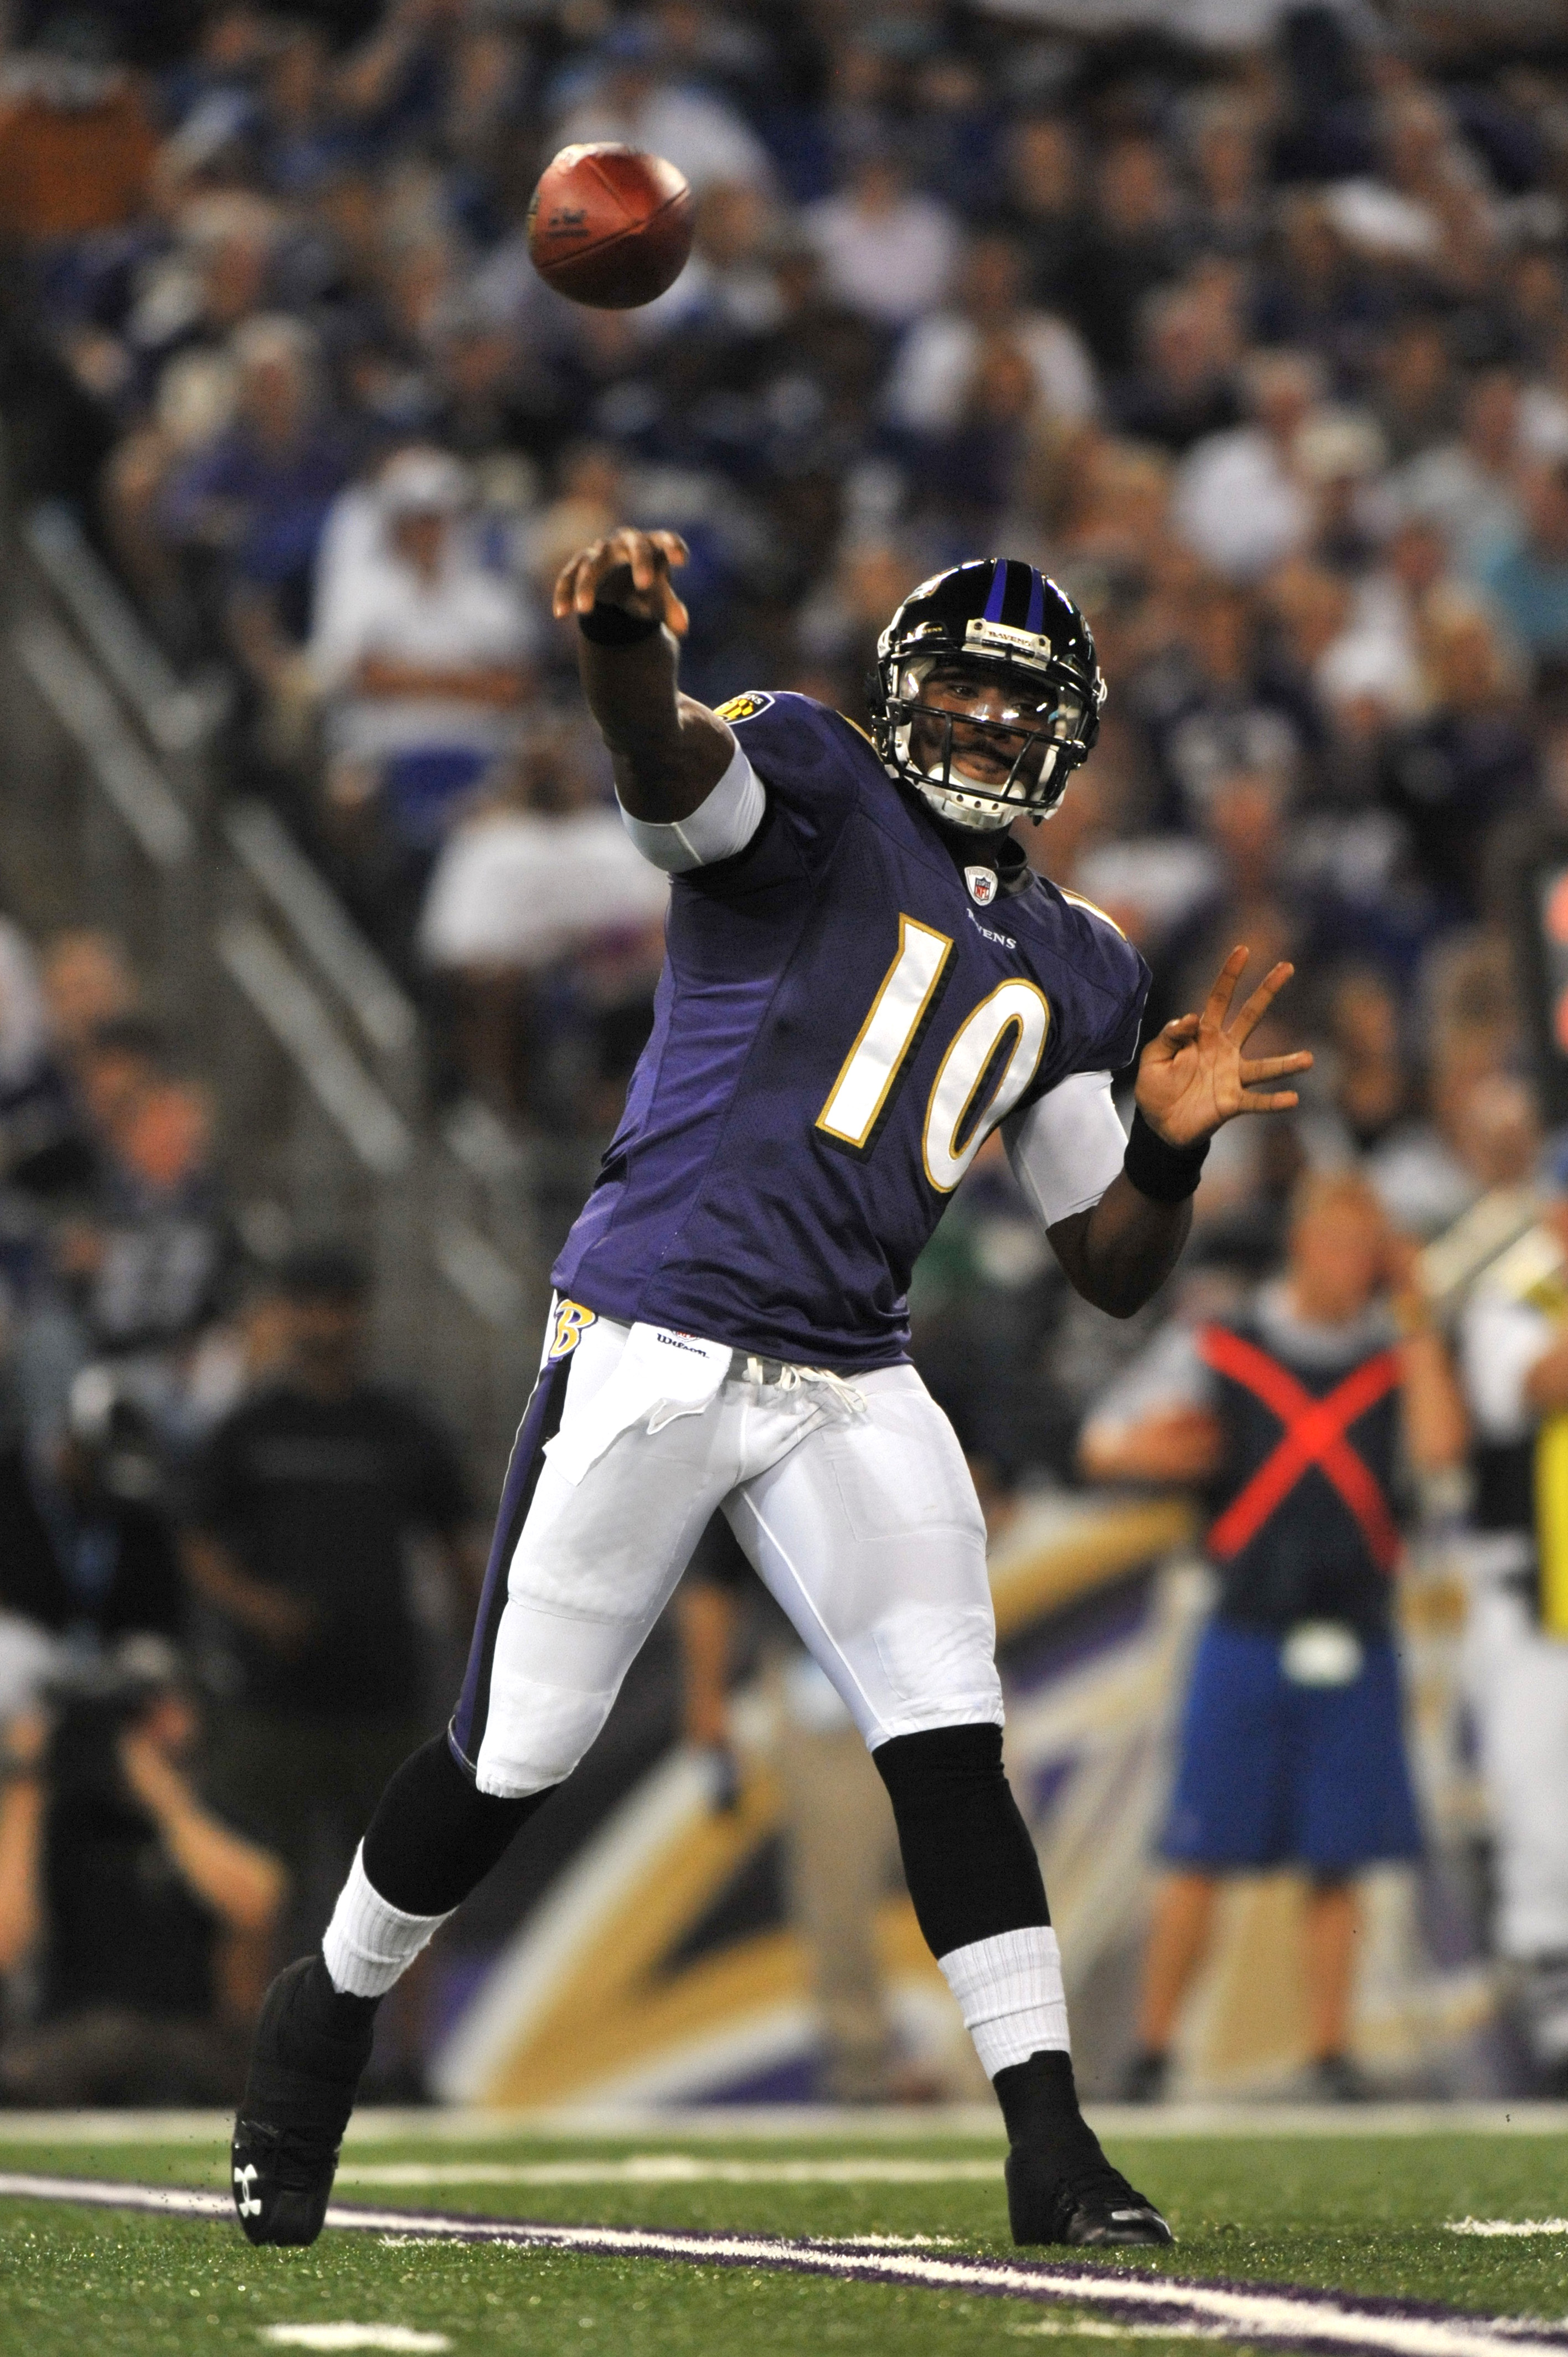 BALTIMORE - AUGUST 28:  Troy Smith #10 of the Baltimore Ravens passes against the New York Giants in a preseason game at M&T Bank Stadium on August 28, 2010 in Baltimore, Maryland. The Ravens defeated the Giants 24-10. (Photo by Larry French/Getty Images)